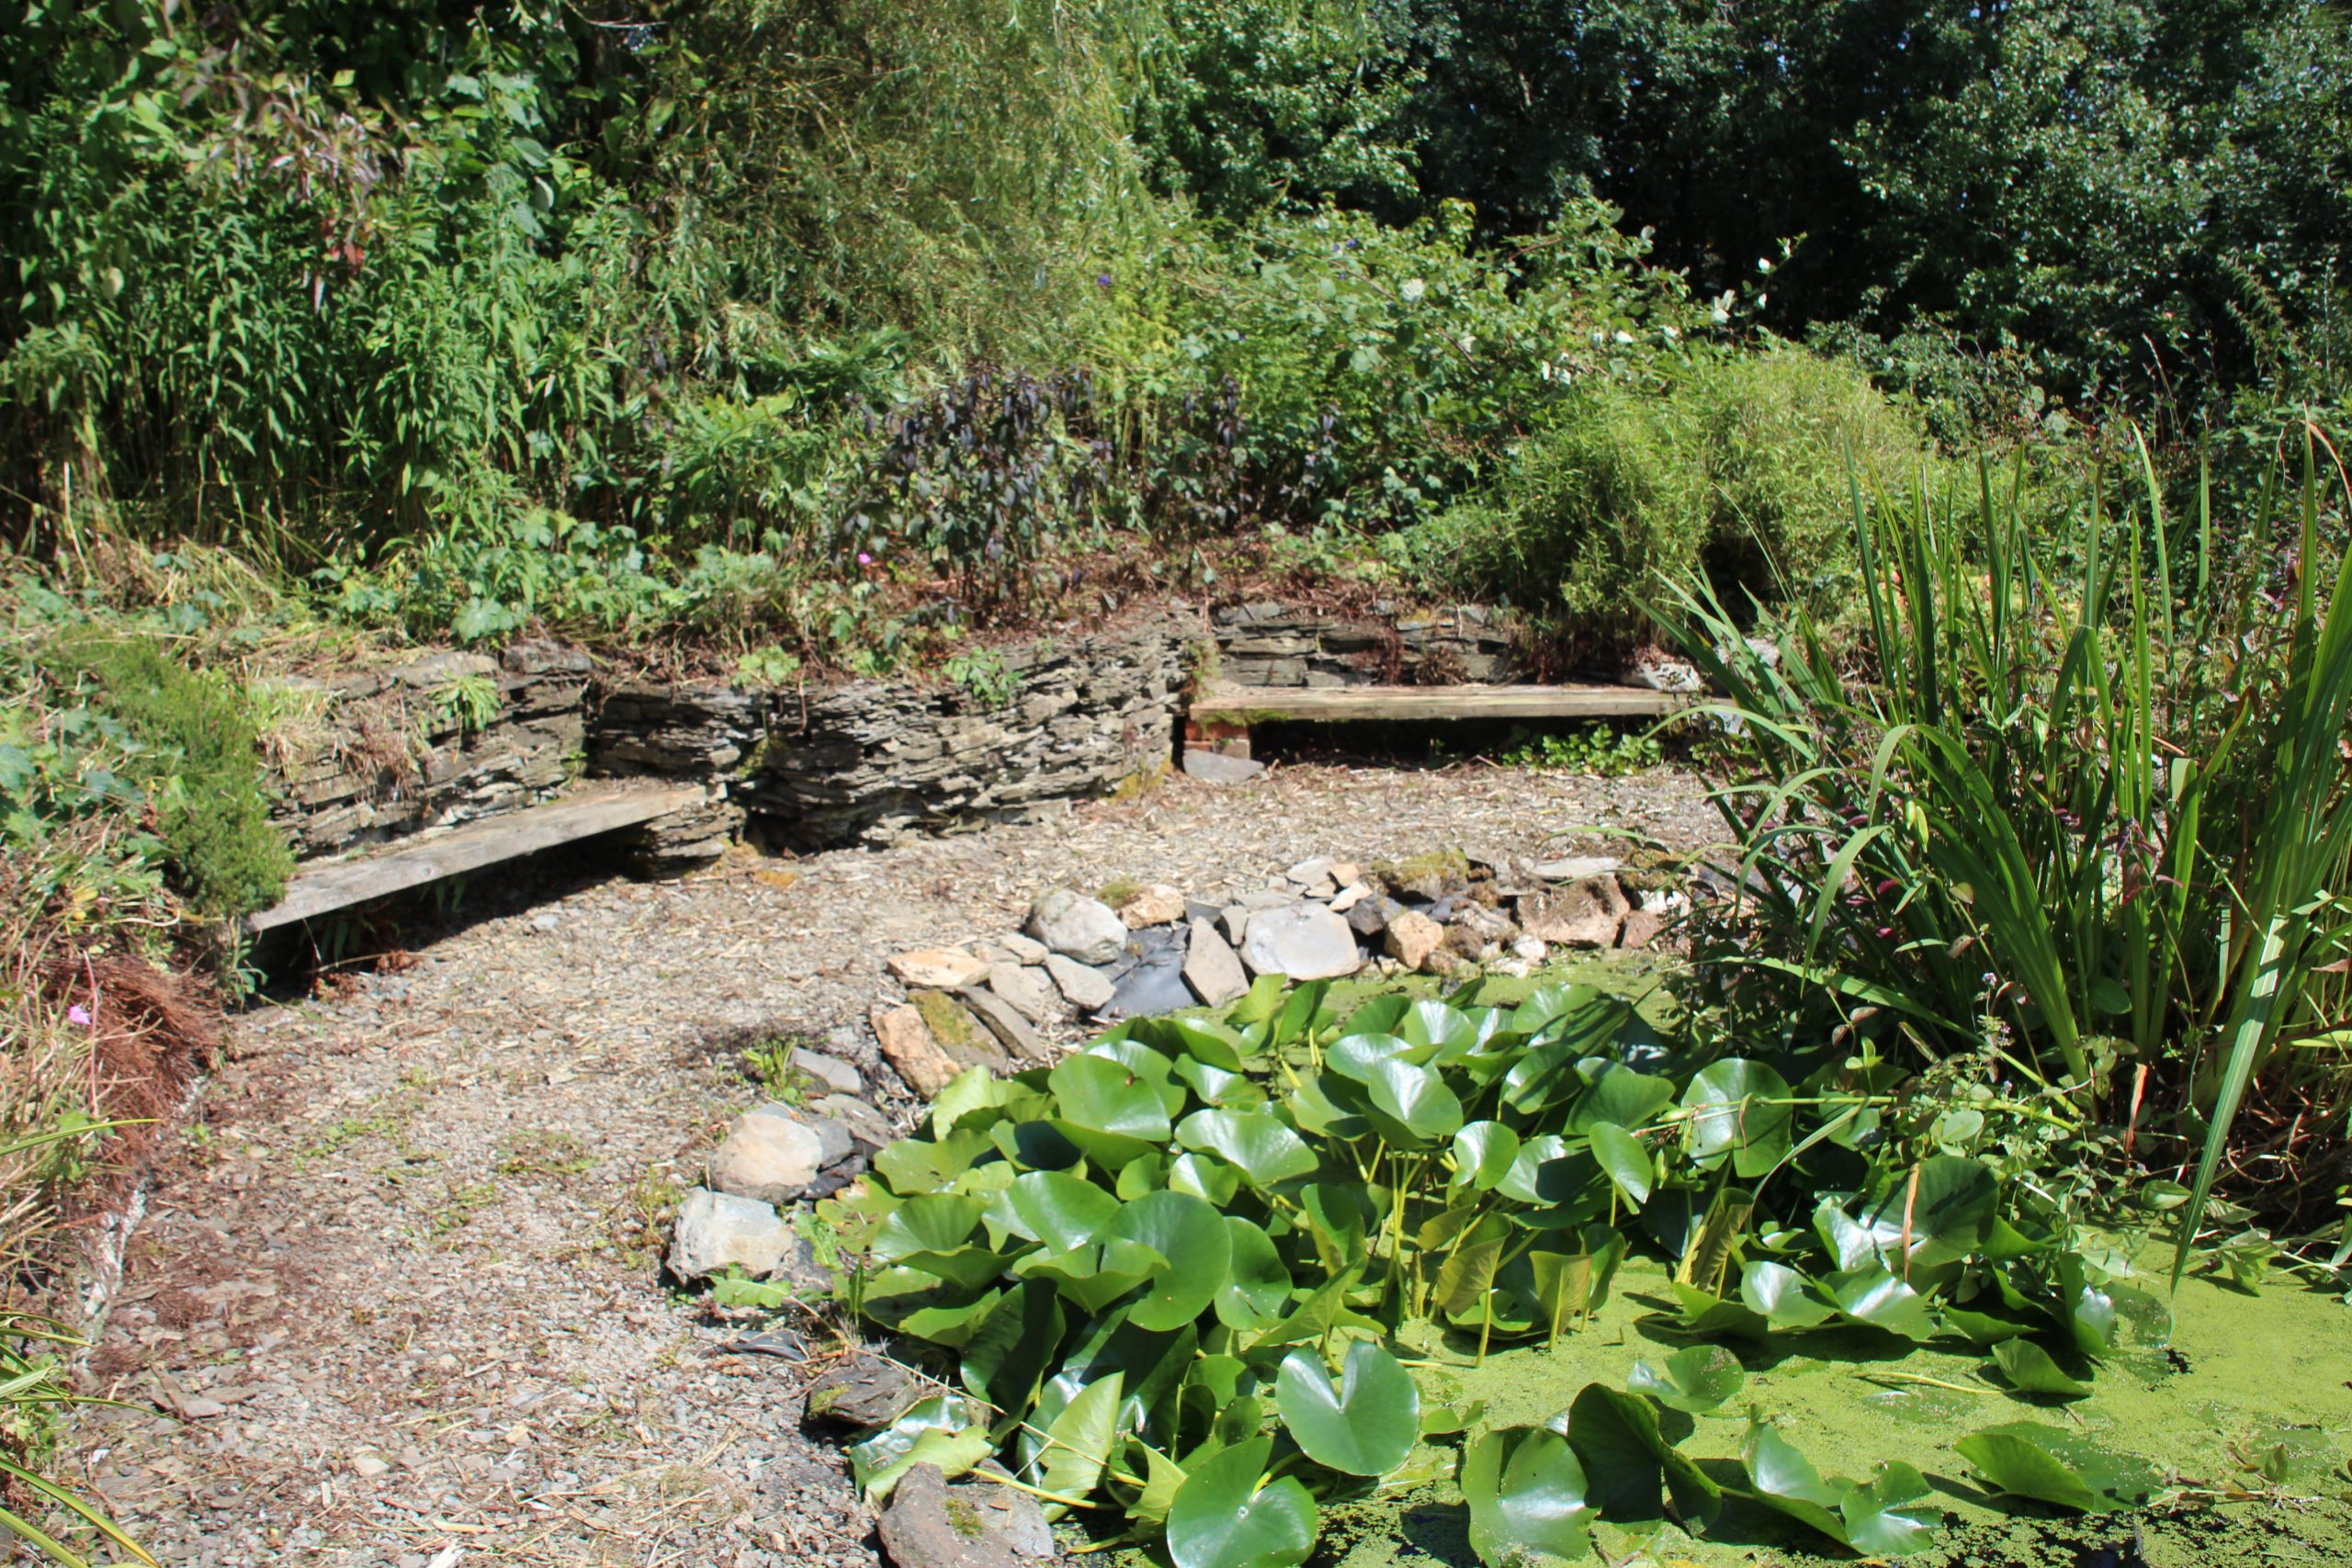 A path surrounding a pond with lots of lillies in it